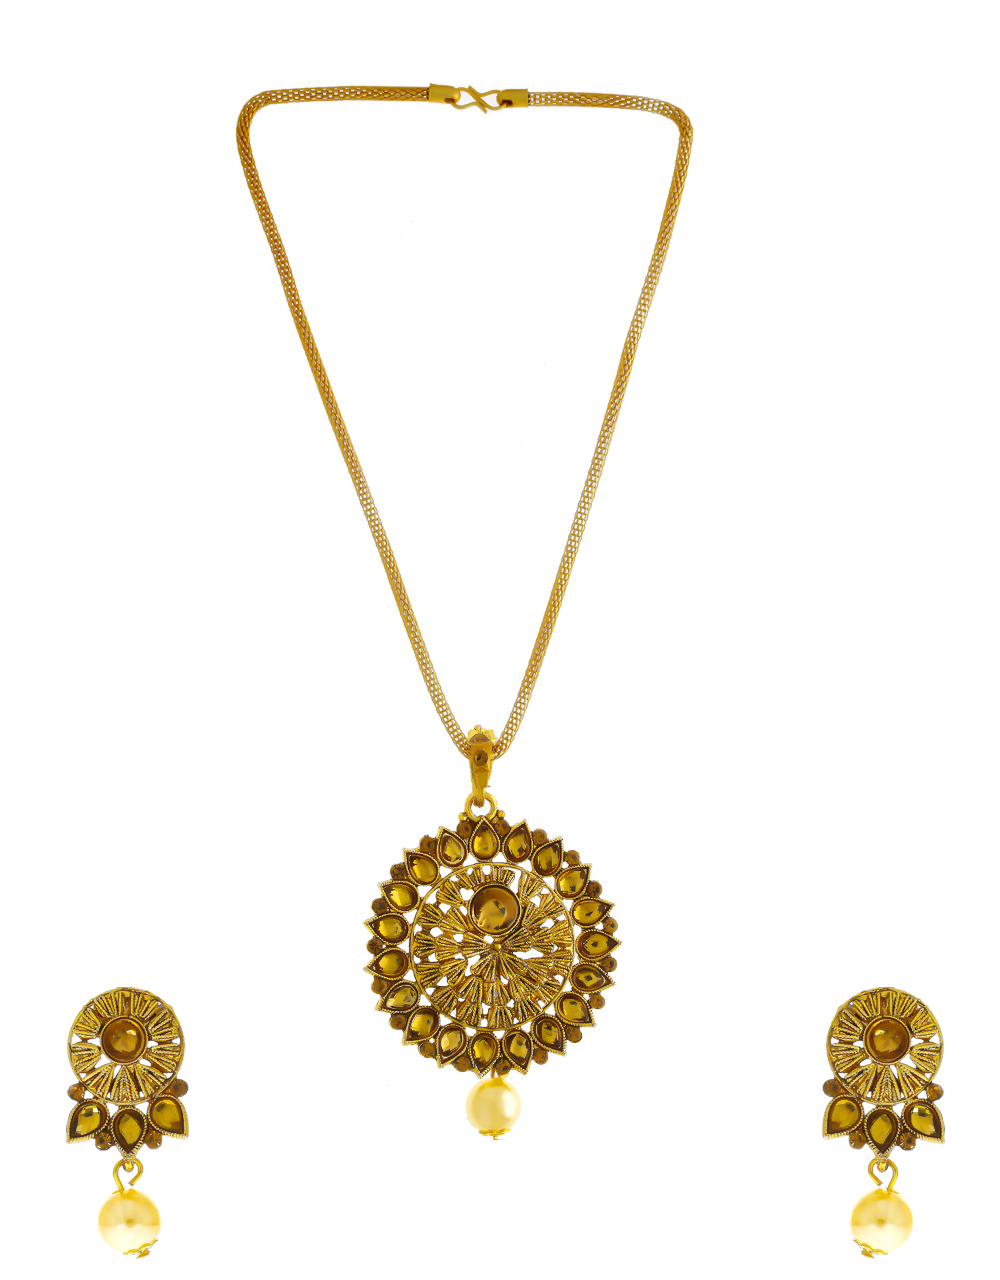 Designer Antique Gold Finish Fancy Necklace Pendant Set